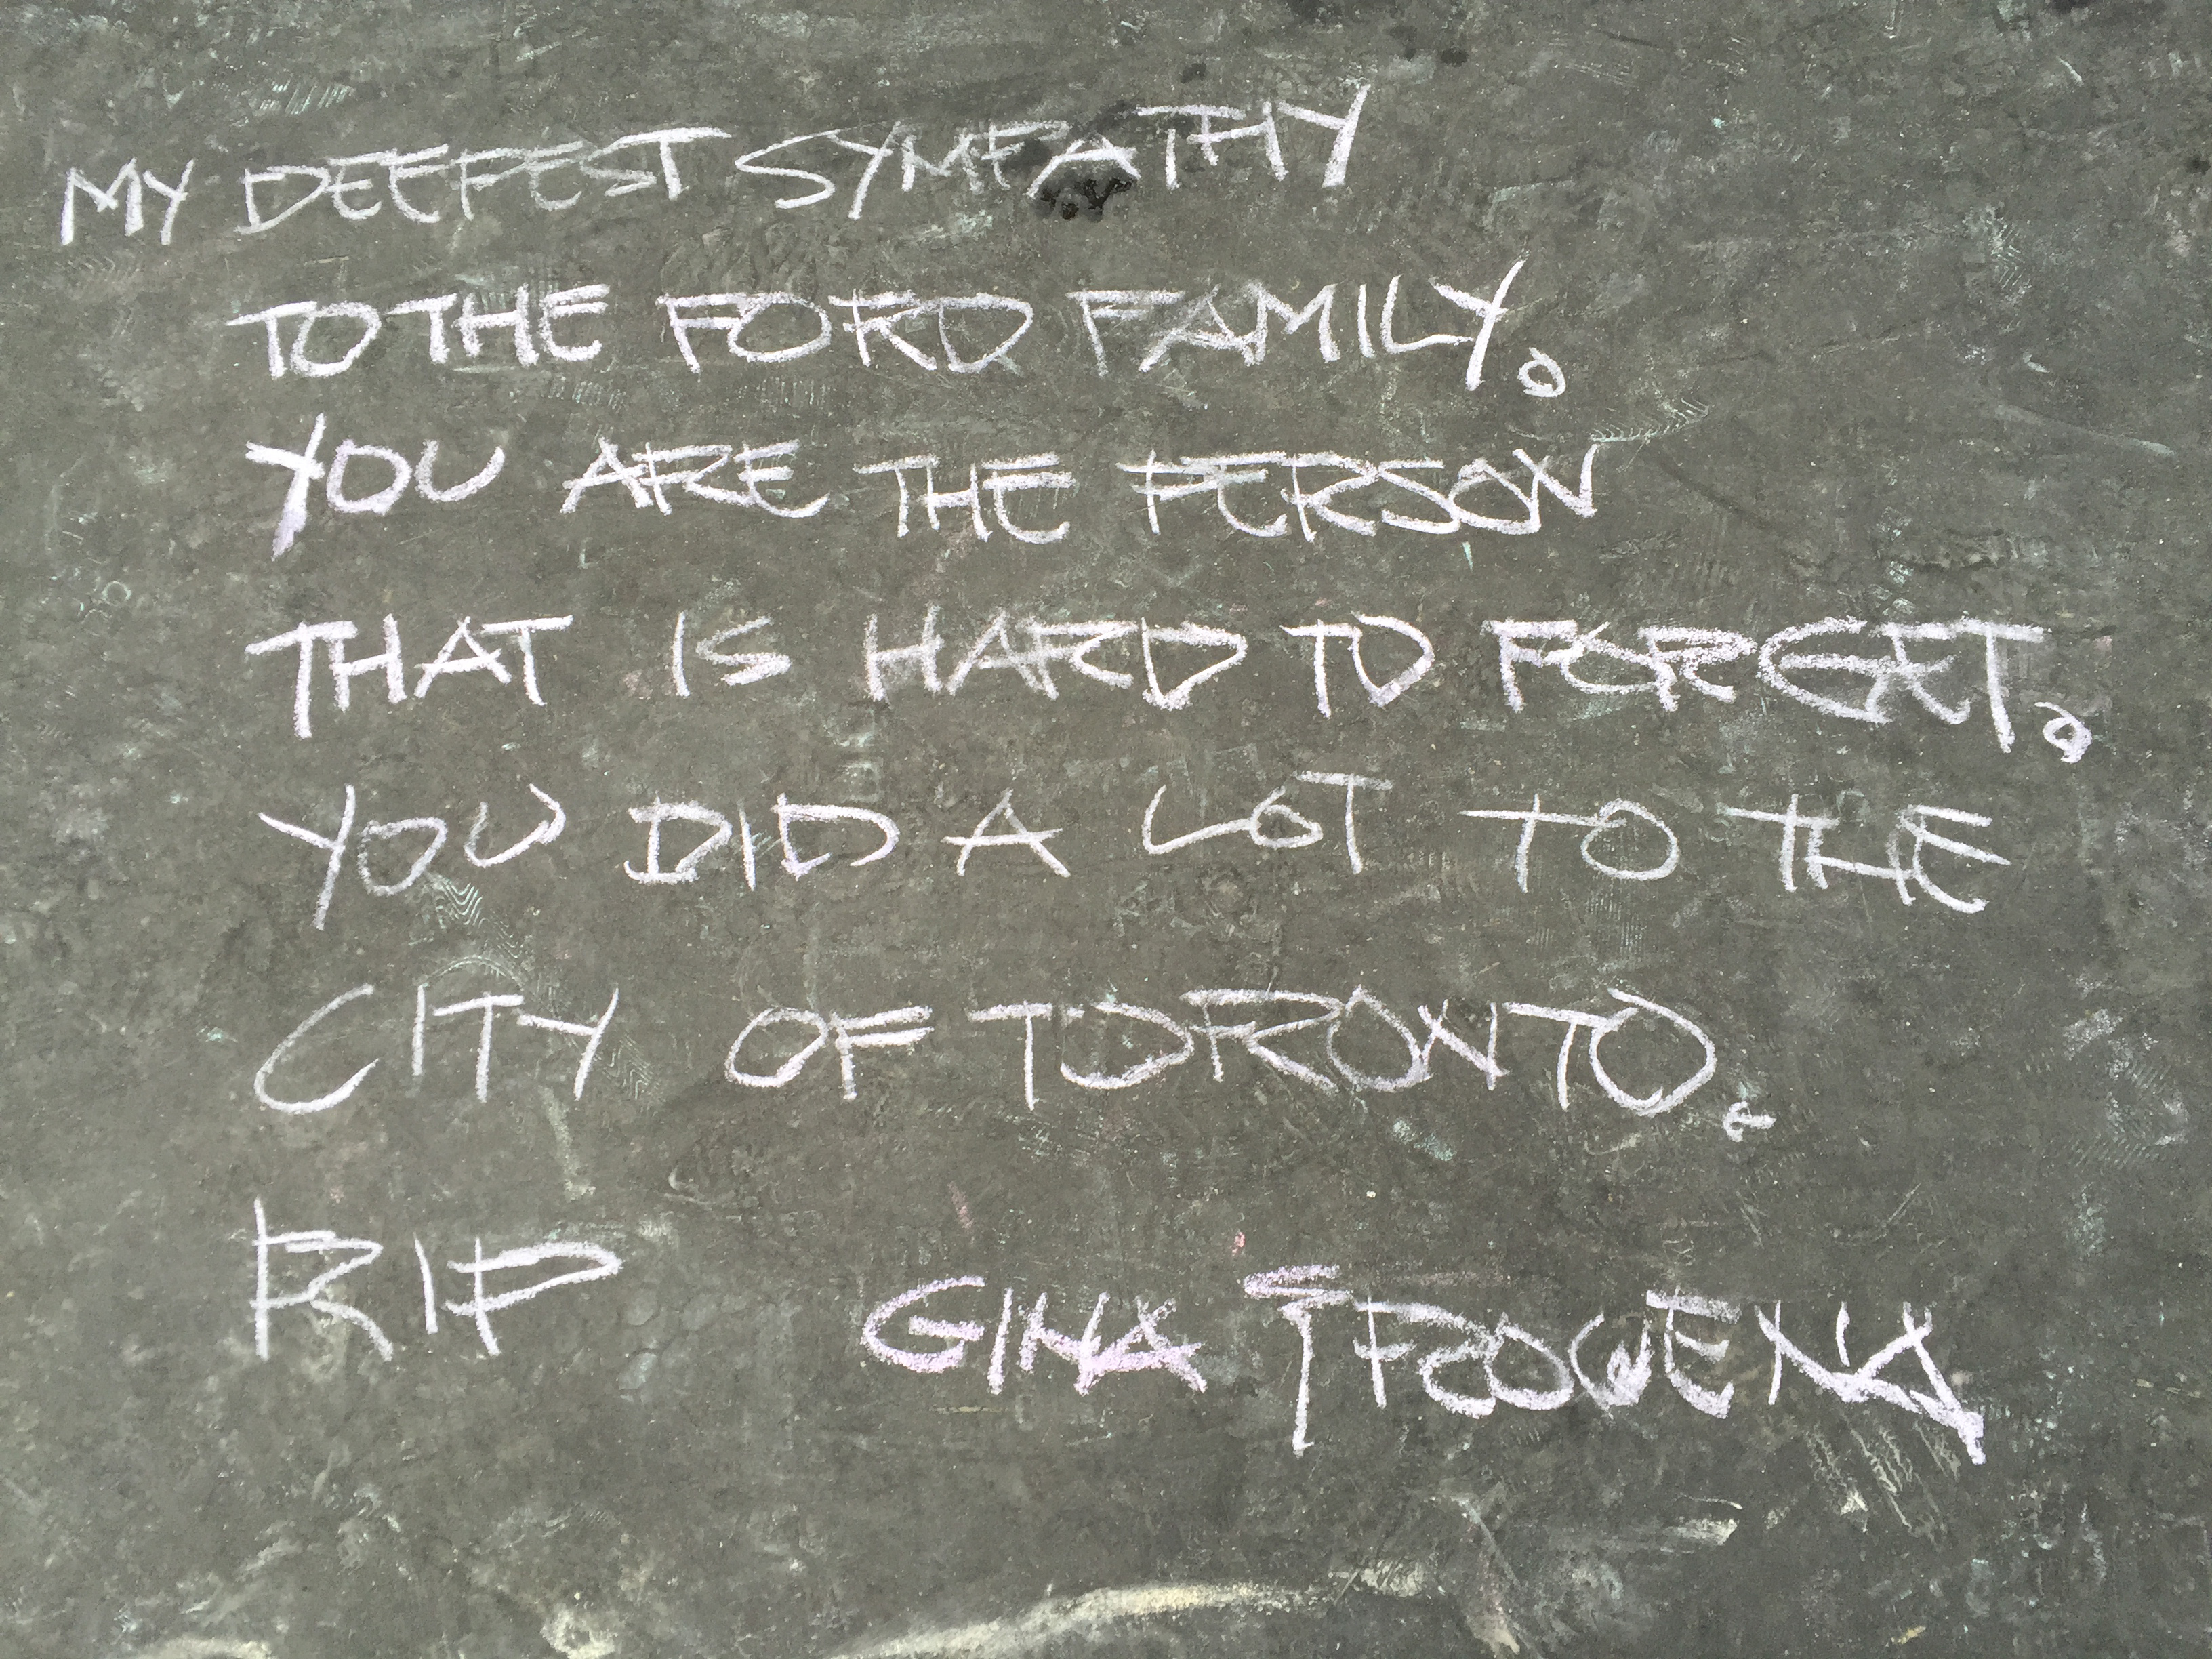 Rob Ford chalk memorial near Toronto sign outside City Hall